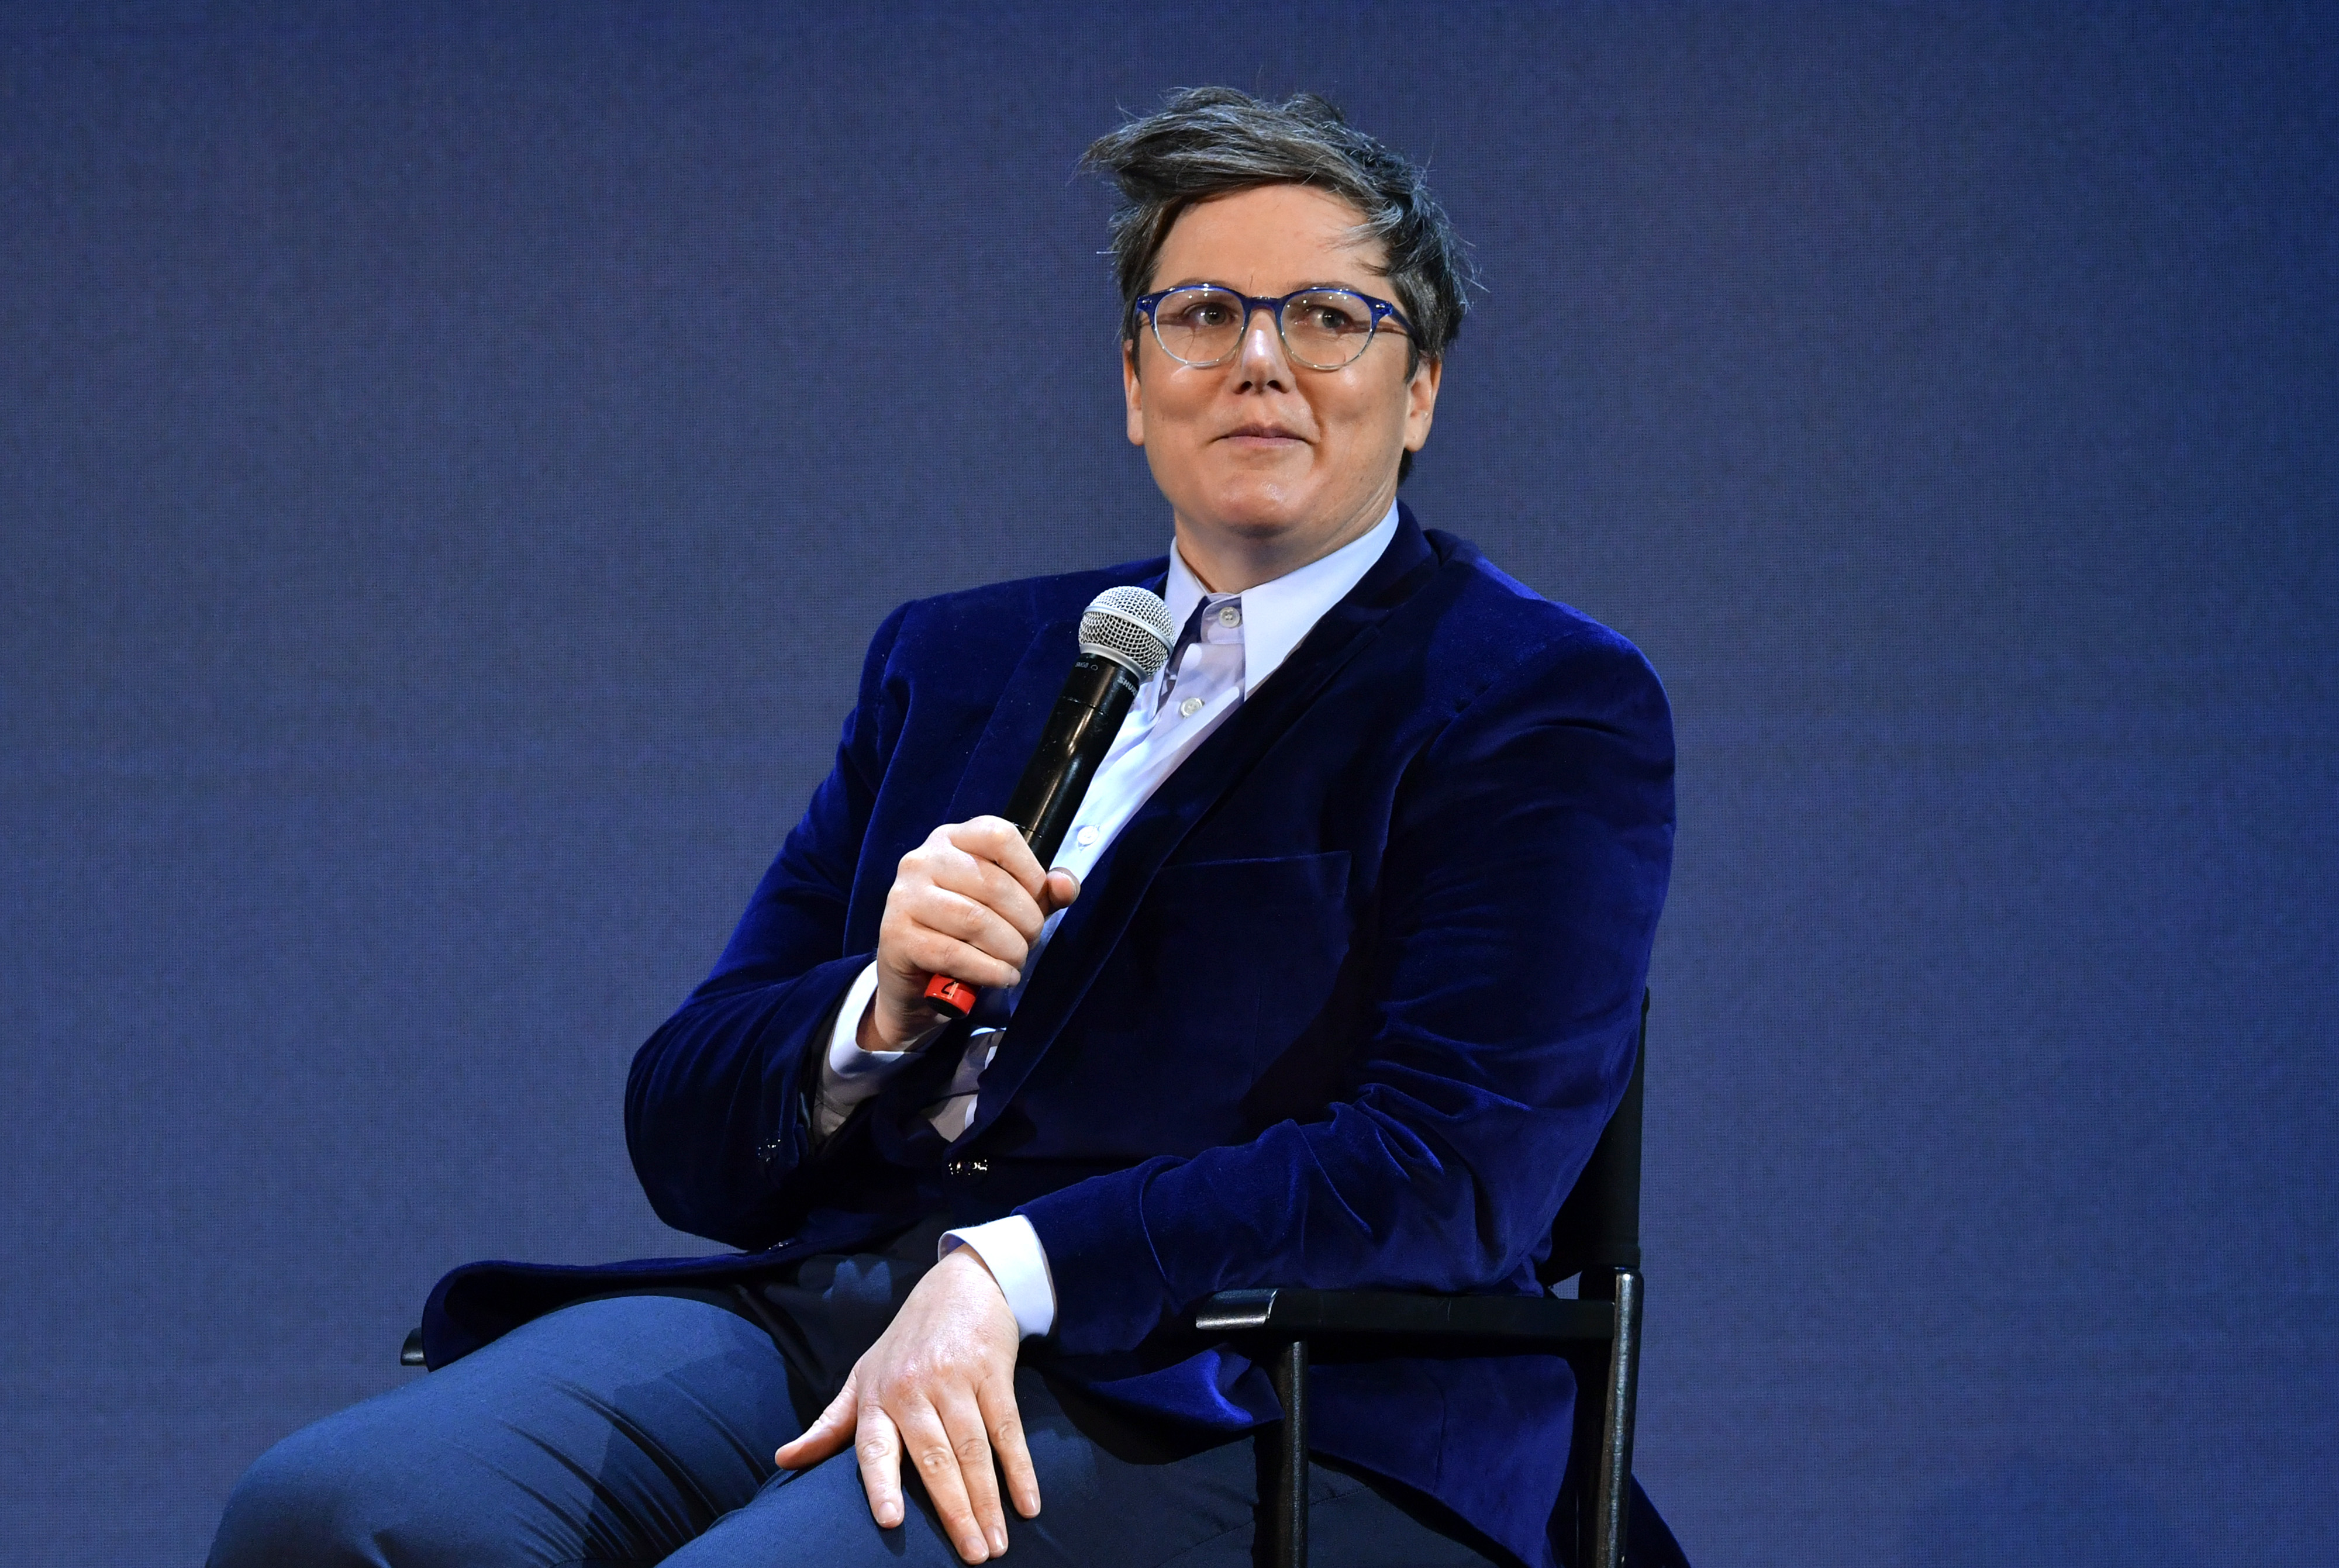 Comedian Hannah Gadsby sitting onstage holding a microphone.